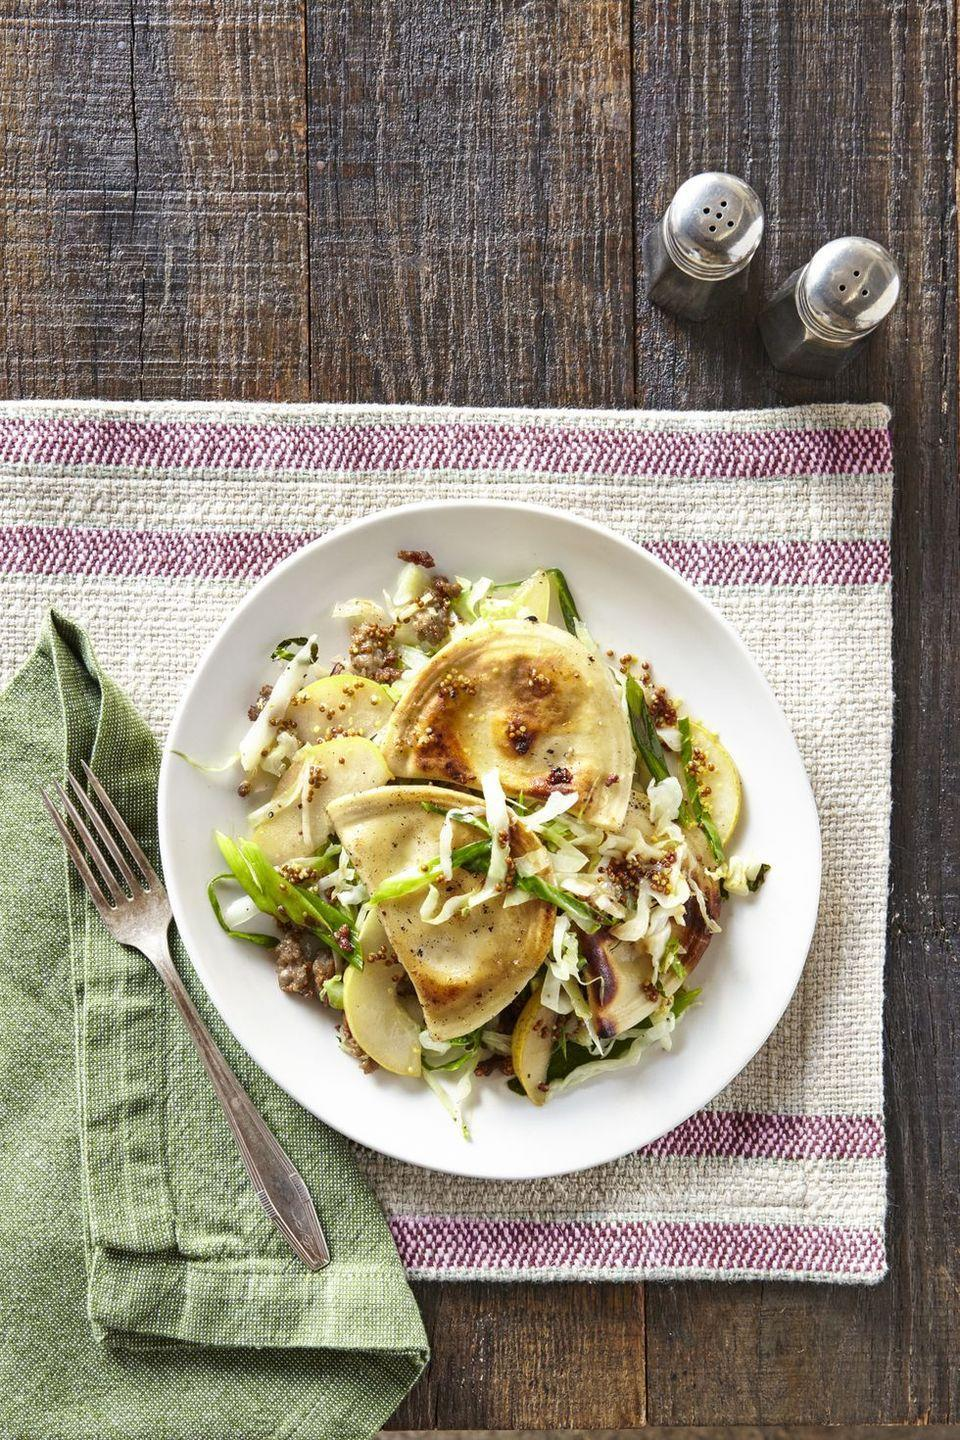 """<p>It's time to upgrade your easy weeknights eats (no, not chicken again!) with these potato-filled pockets topped with juicy sausage and served with a tangy salad.</p><p><em><a href=""""https://www.countryliving.com/food-drinks/recipes/a39829/pierogies-with-sausage-cabbage-pear-recipe/"""" rel=""""nofollow noopener"""" target=""""_blank"""" data-ylk=""""slk:Get the recipe from Country Living »"""" class=""""link rapid-noclick-resp"""">Get the recipe from Country Living »</a></em></p>"""